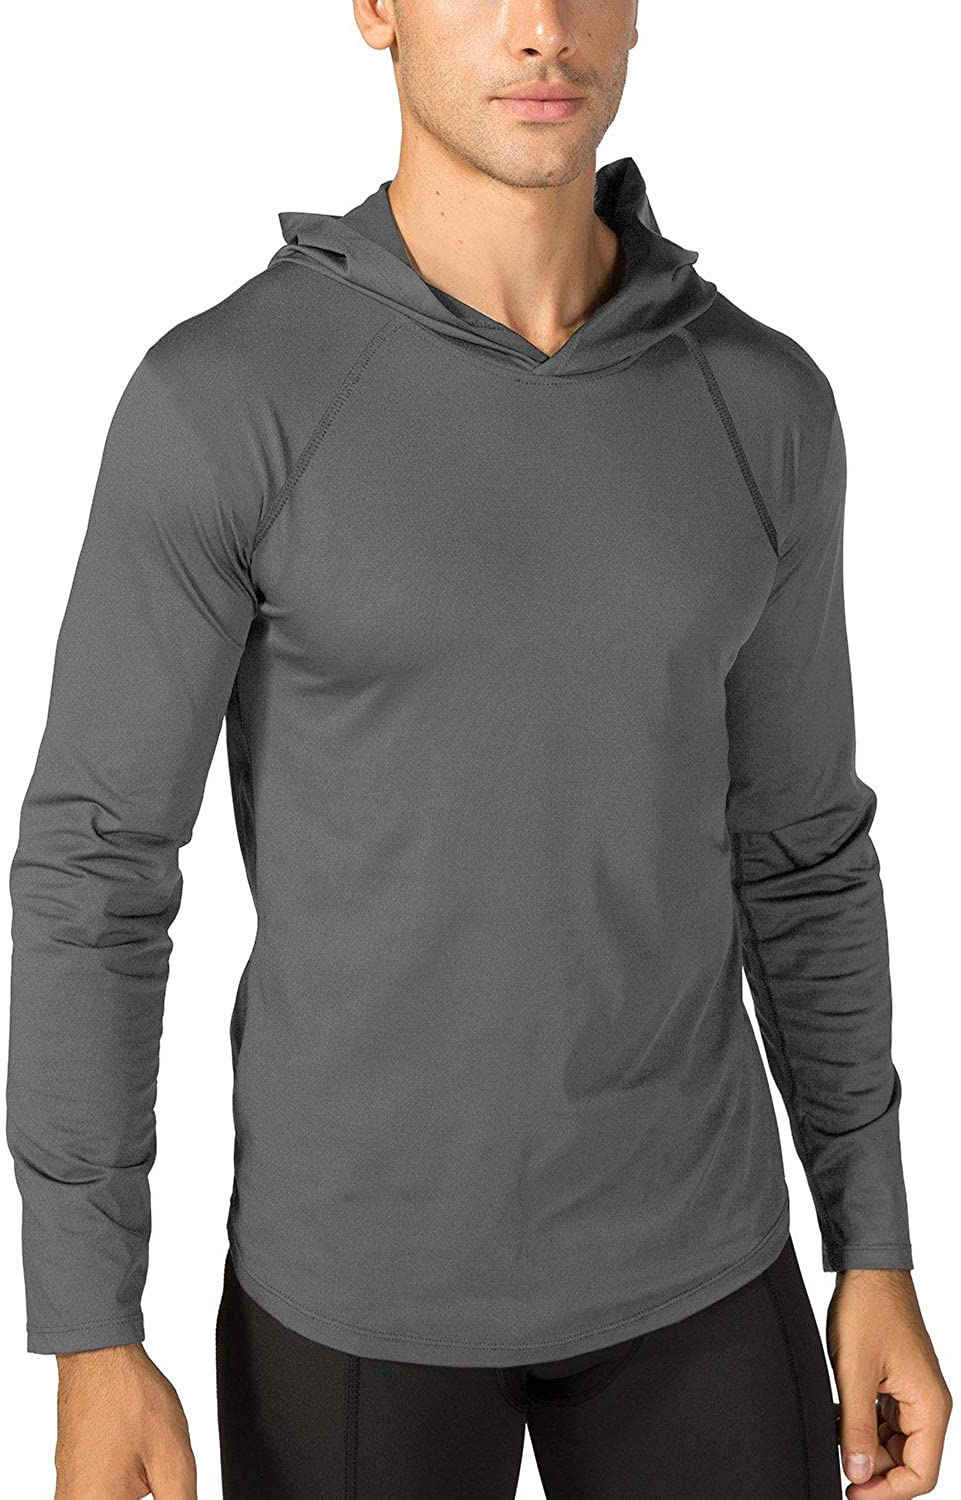 BIYLACLESEN Men's Sun Protection Long Per shopping UPF Limited time for free shipping 50+ Sleeve T-Shirt